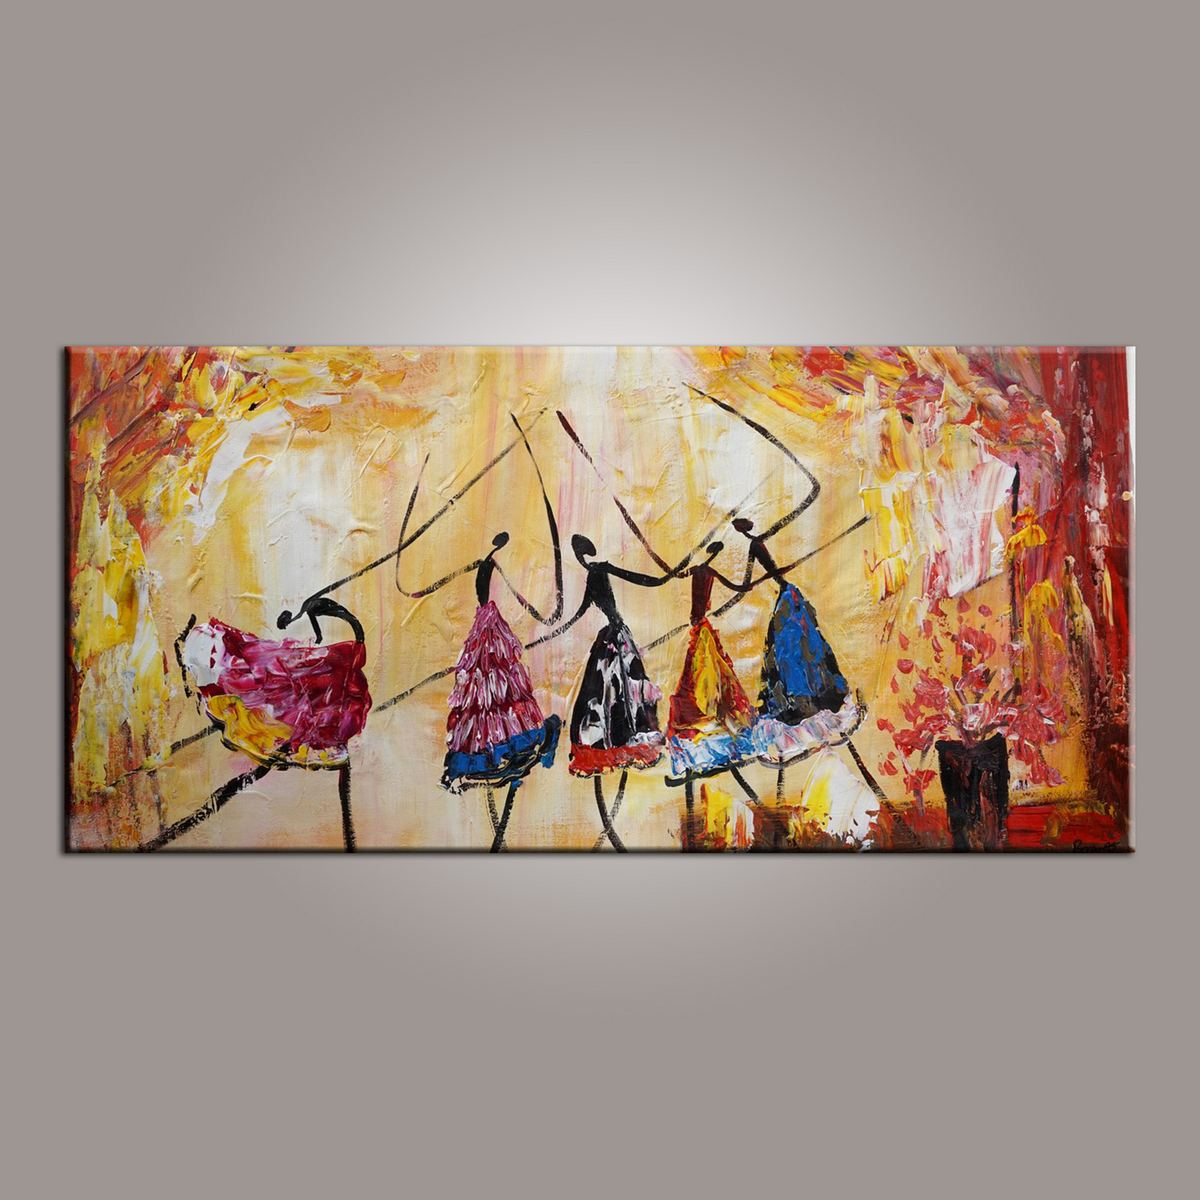 Canvas Painting, Abstract Painting, Large Art, Ballet Dancer Art, Abstract Art, Wall Art, Wall Hanging, Bedroom Wall Art, Modern Art, Painting for Sale-Paintingforhome